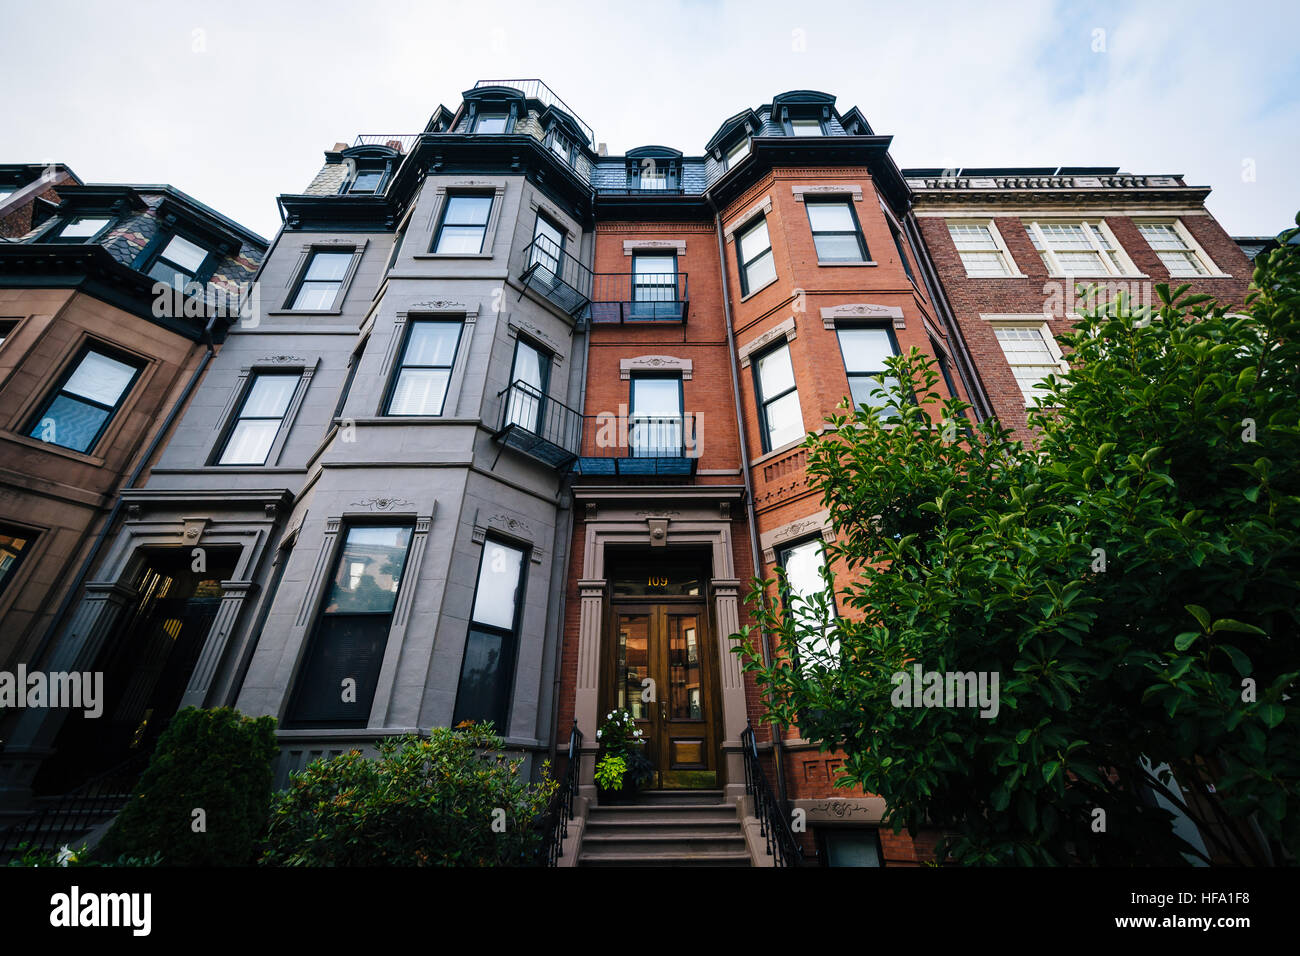 Historic brick buildings in Back Bay, Boston, Massachusetts. Stock Photo